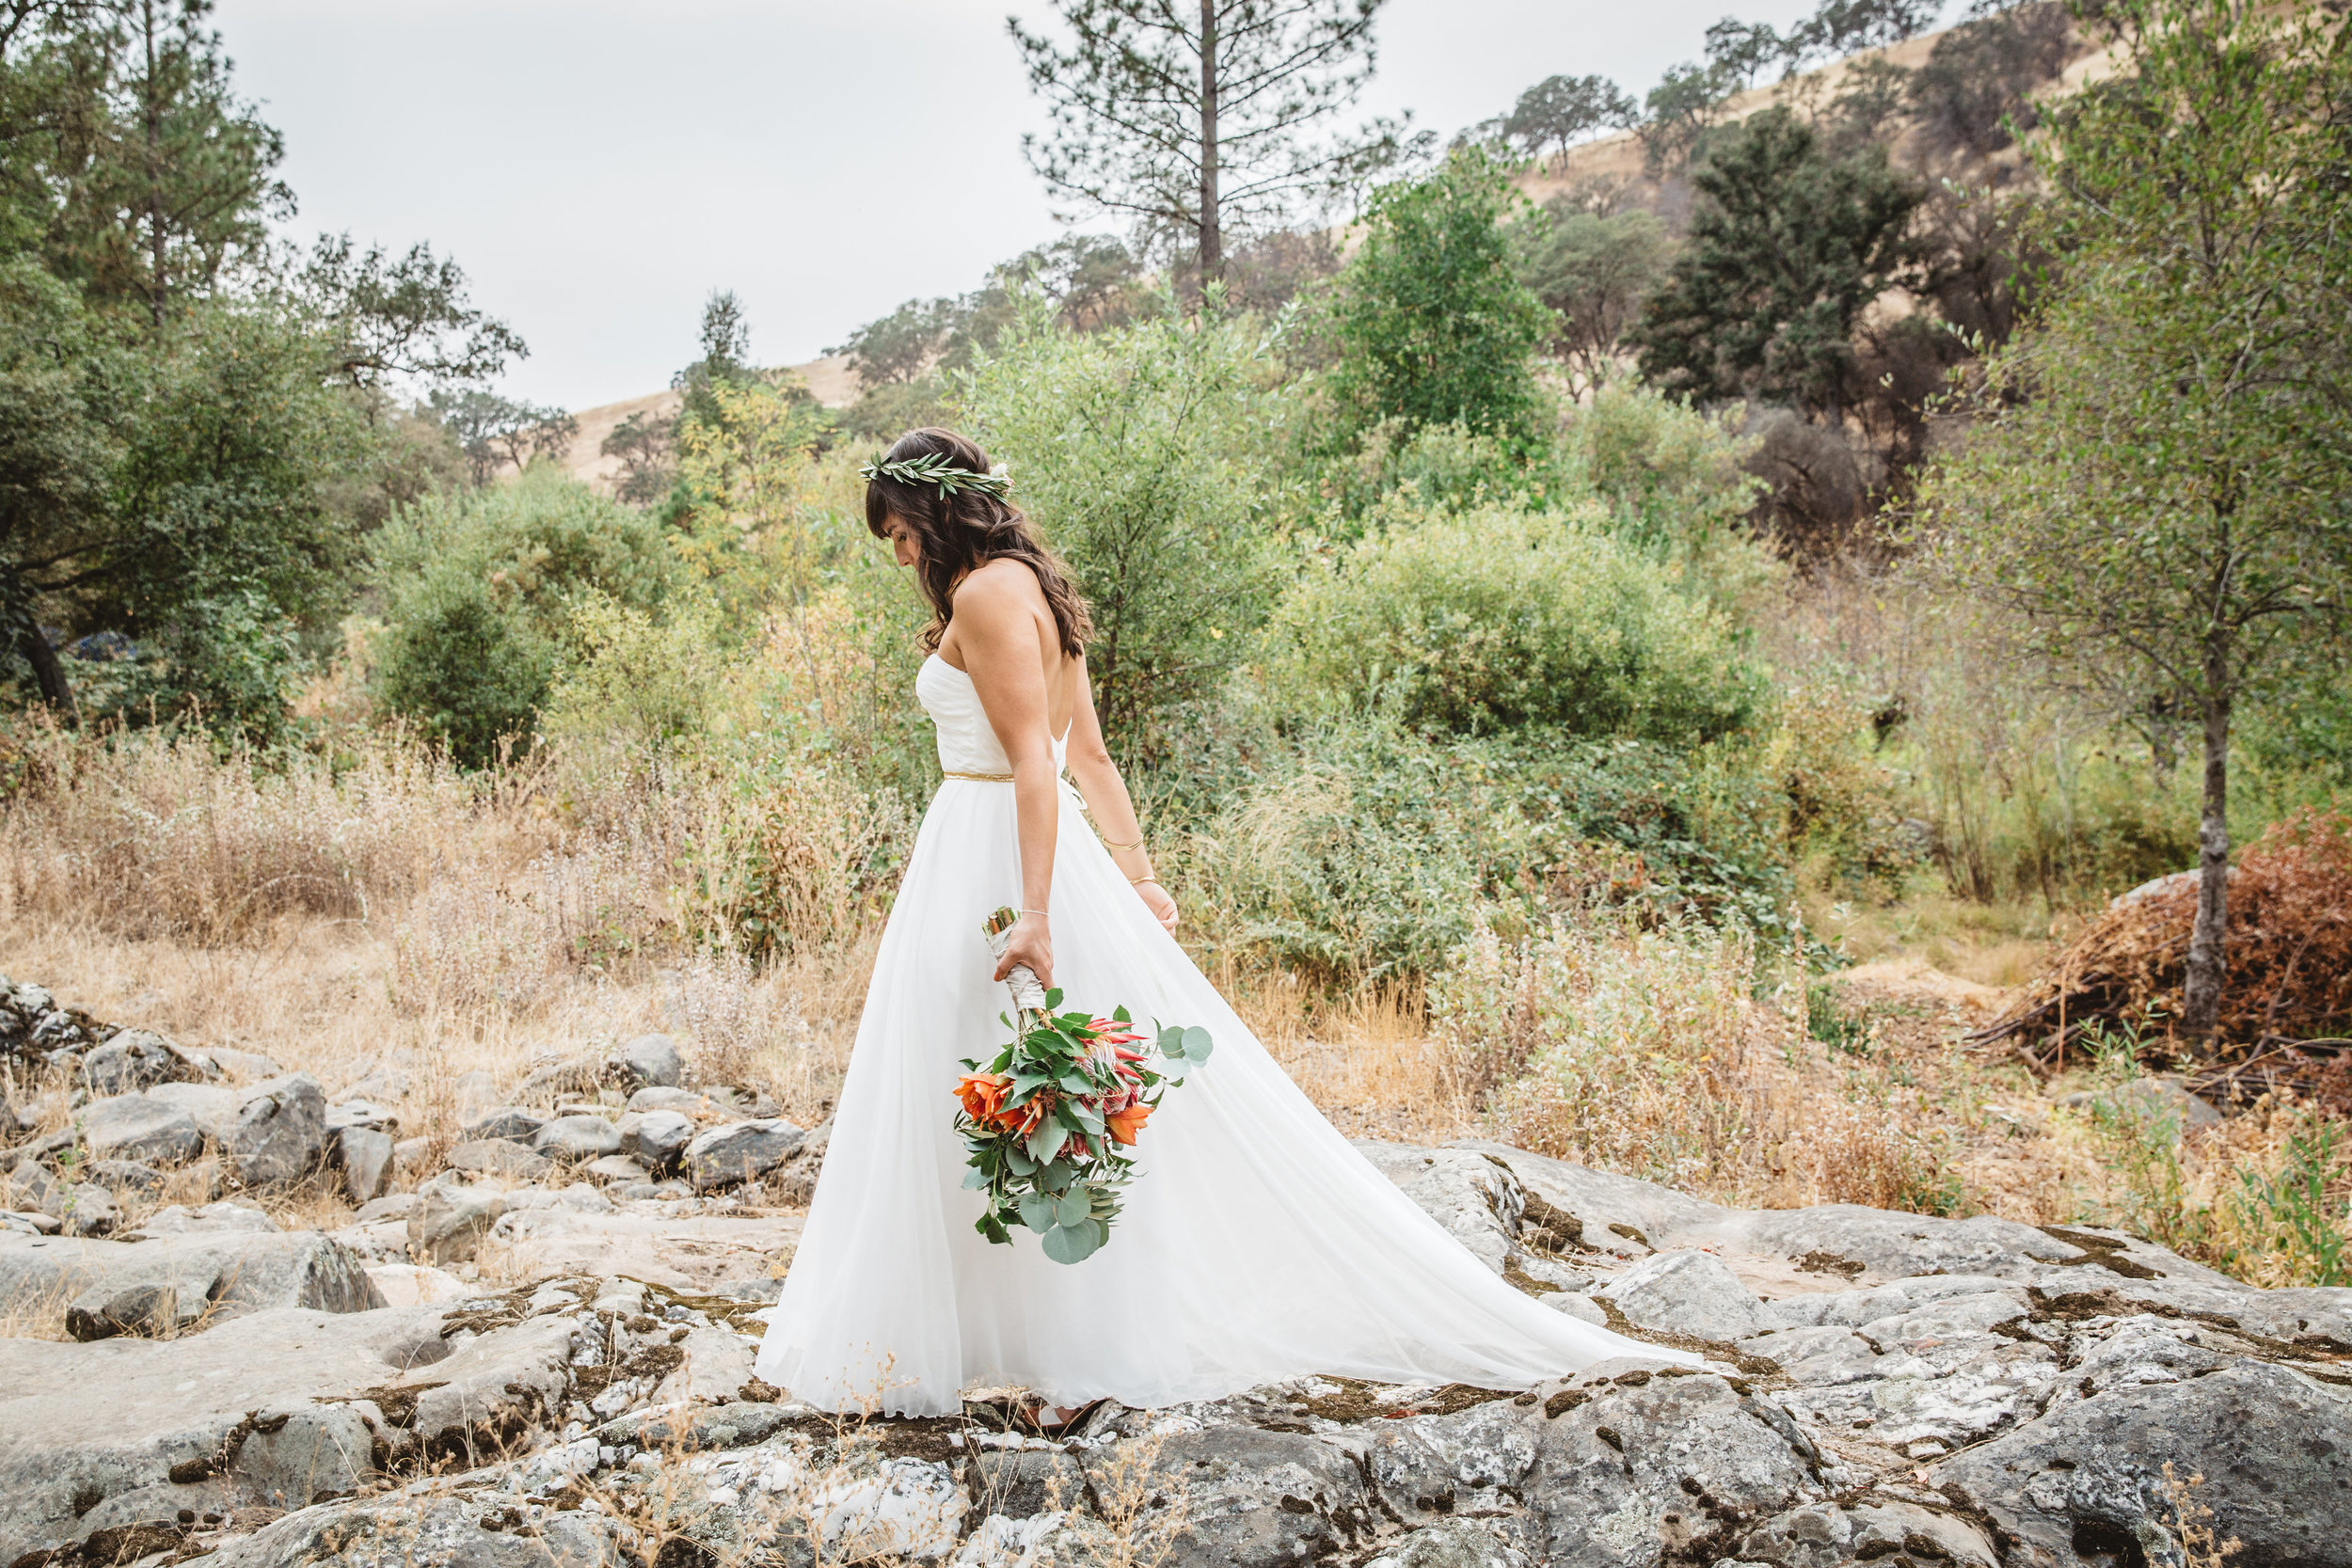 Hi girls!   Wanted to follow up and let you know how much I adored my dress at my wedding! I felt beautiful all day, and am so pleased with it!Thank you for all of your help over the summer! Couldn't have done it without your input, Andrea, and your adjustments, Alyssa.  Warmly,   Chloé    #sarahsevenSF